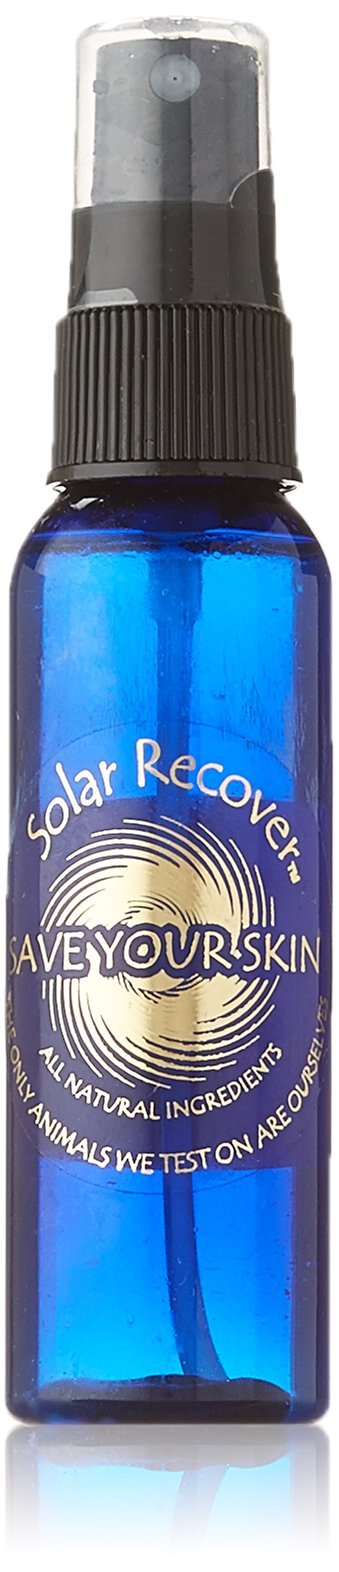 SOLAR RECOVER Save Your Skin Moisturizer Travel Size, 2 Ounce